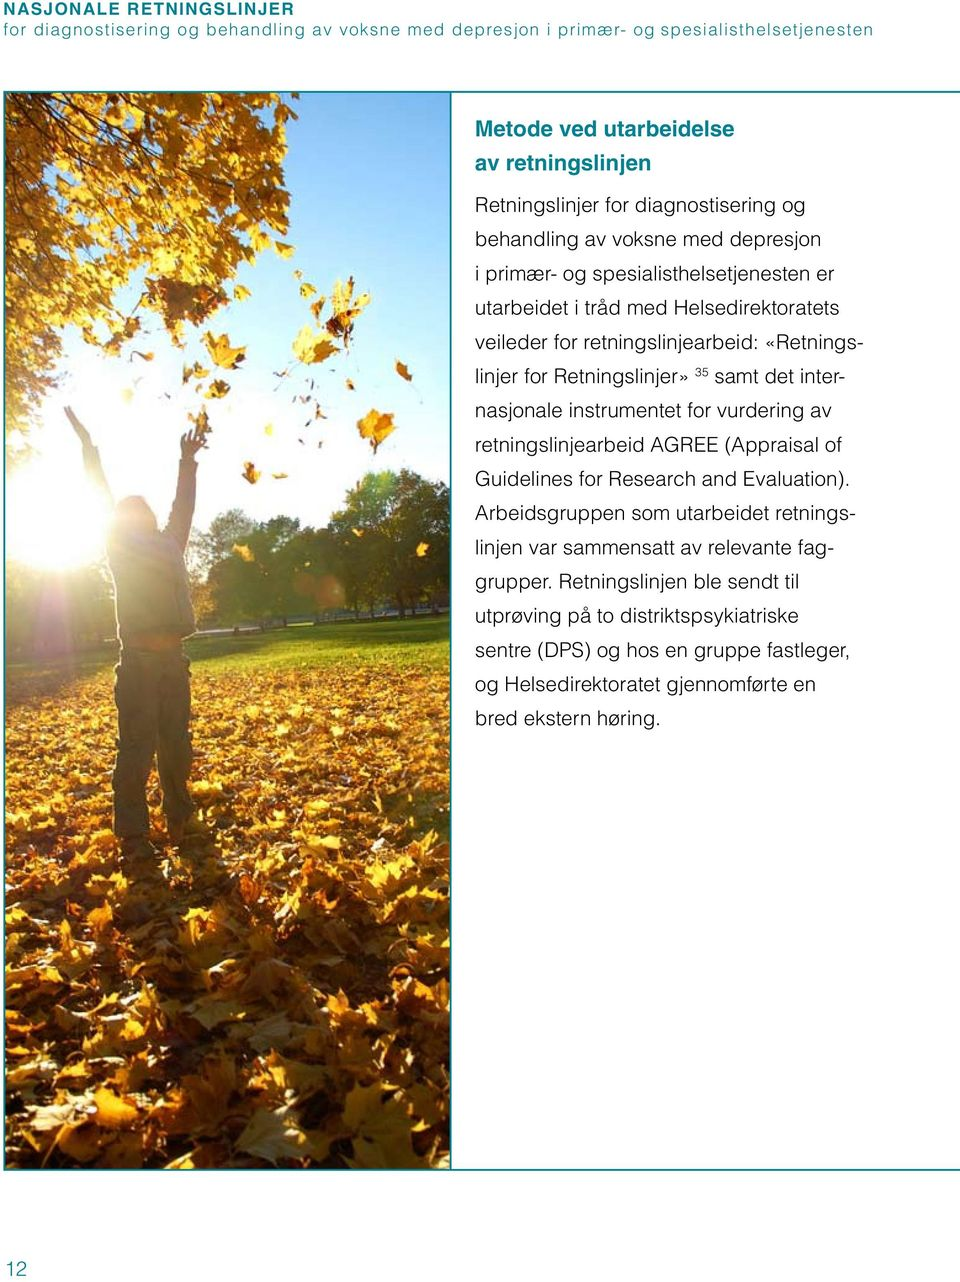 Retningslinjer» 35 samt det internasjonale instrumentet for vurdering av retningslinjearbeid AGREE (Appraisal of Guidelines for Research and Evaluation).